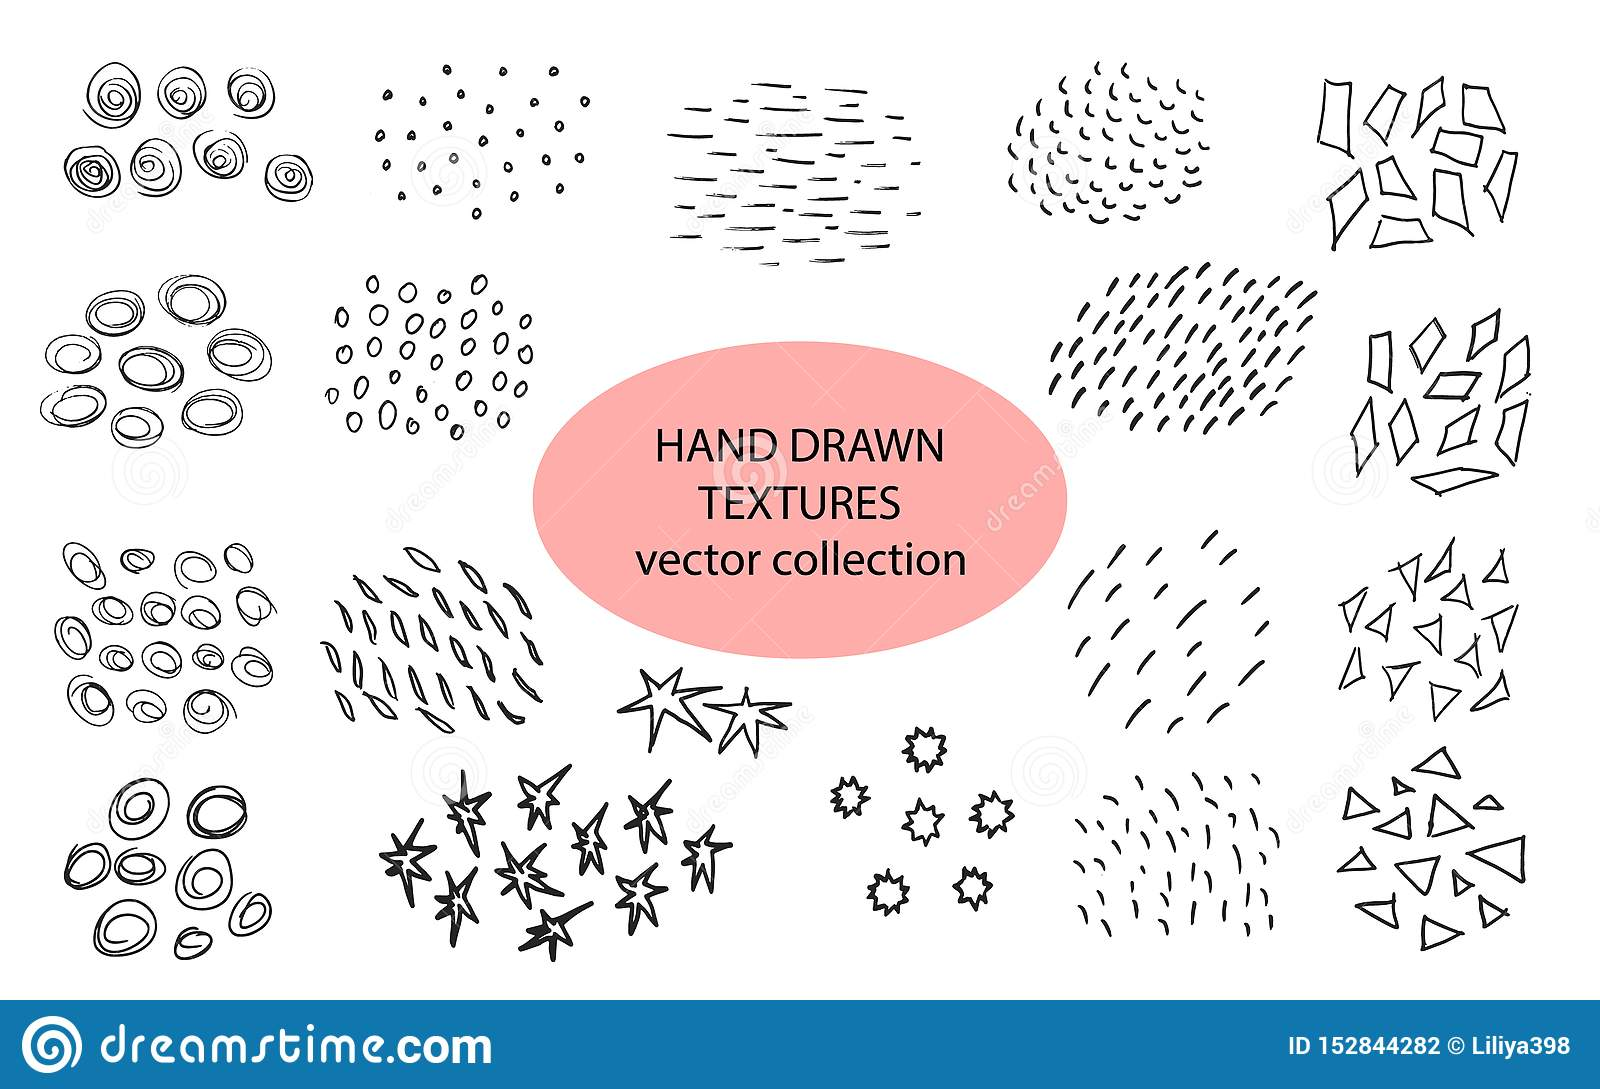 Hand drawn textures, template. Vector design elements. Set of background texture, points, strokes,circles,lines,stars